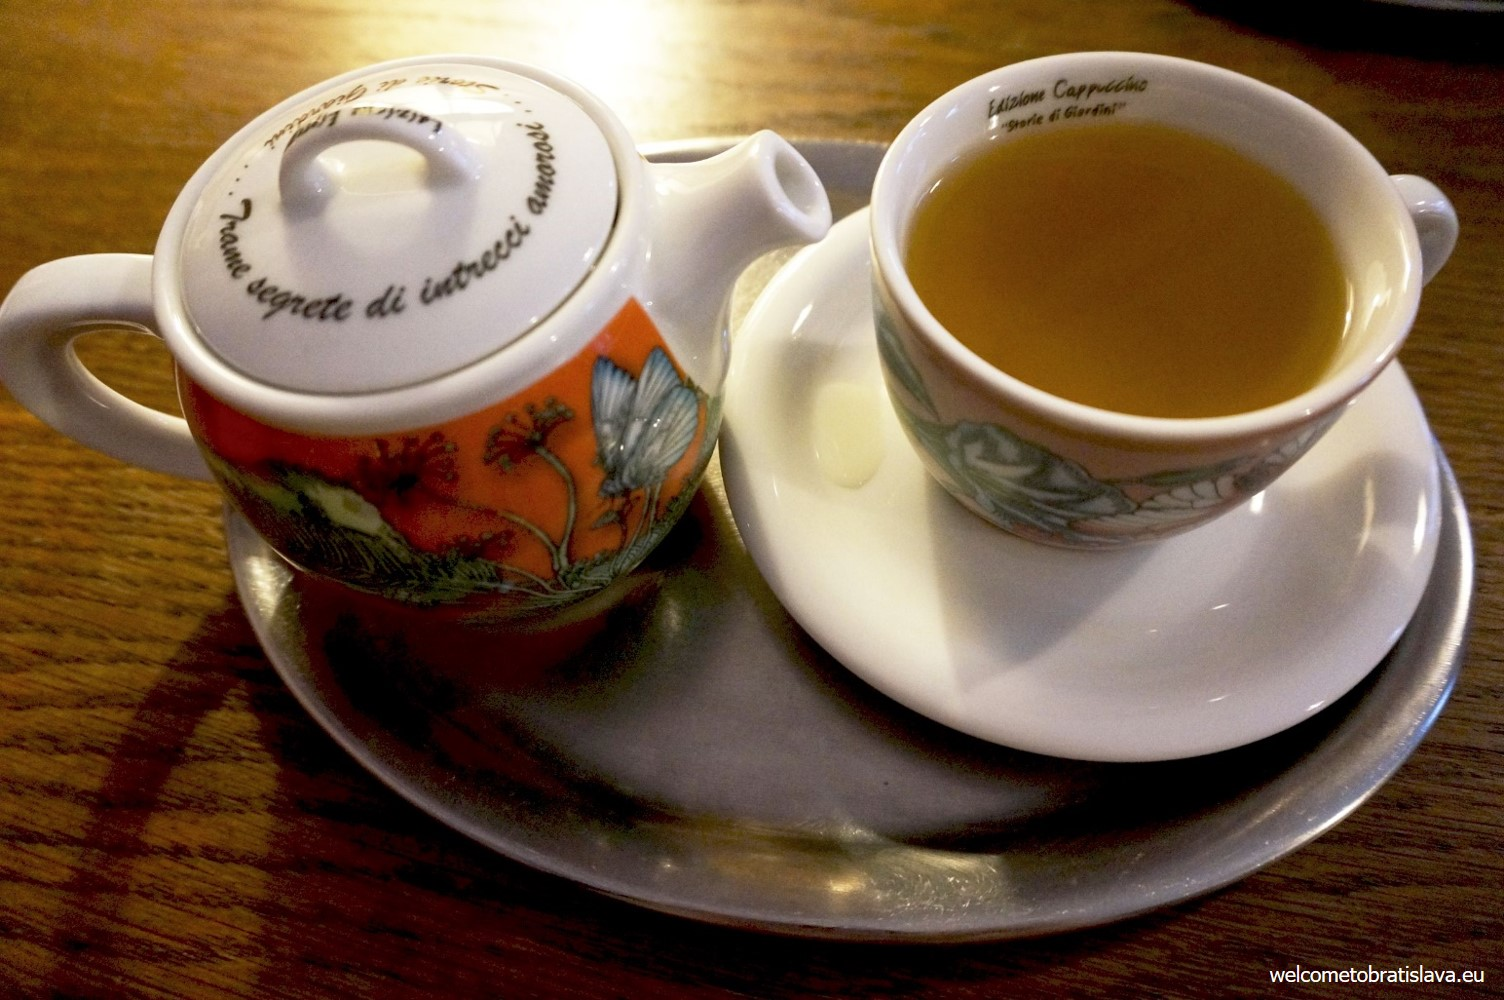 What's better than a cup of nice how tea :)